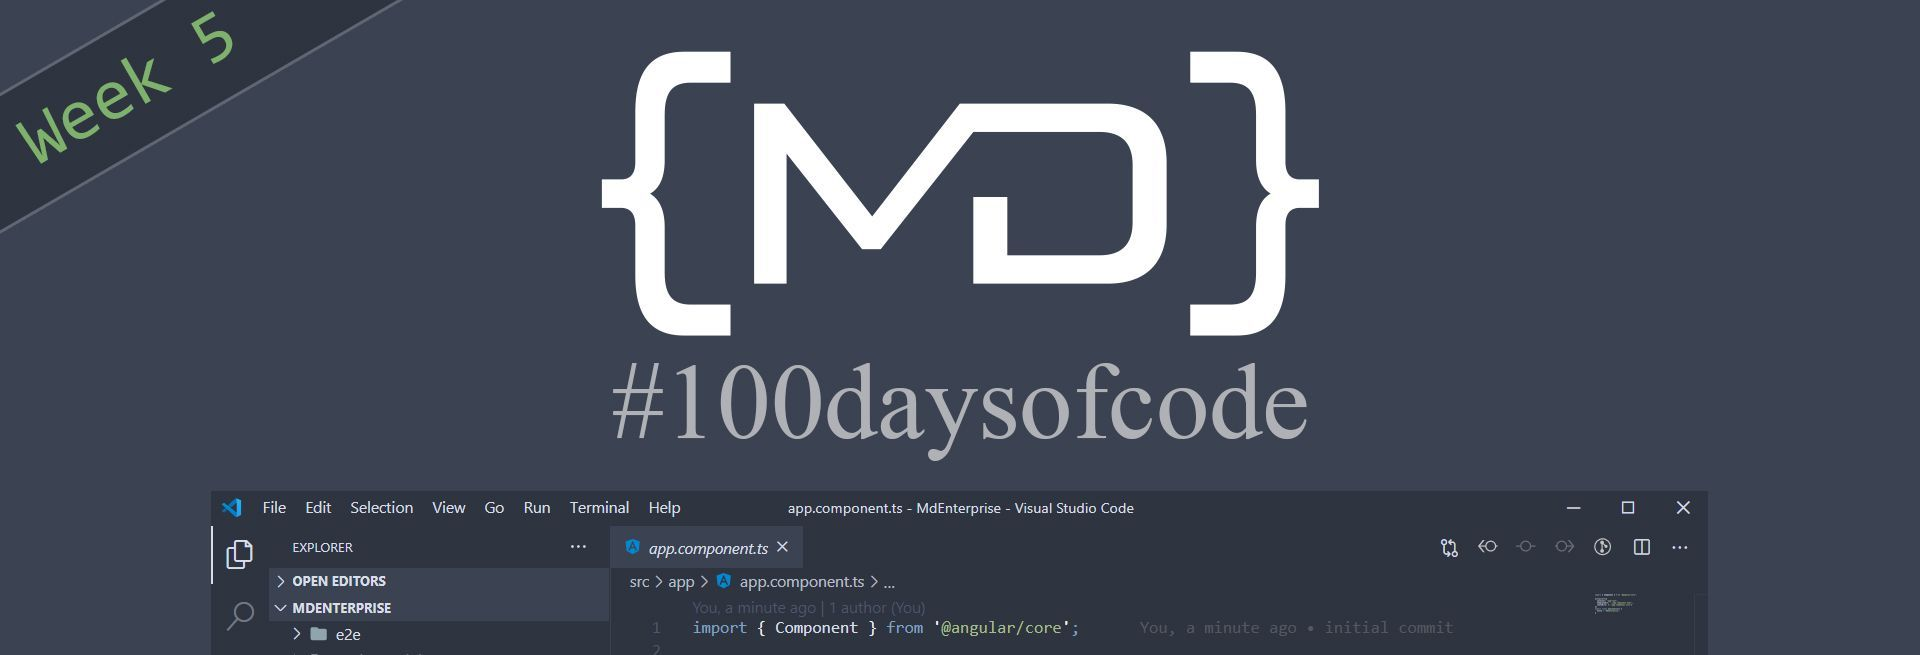 #100daysofcode Week 5